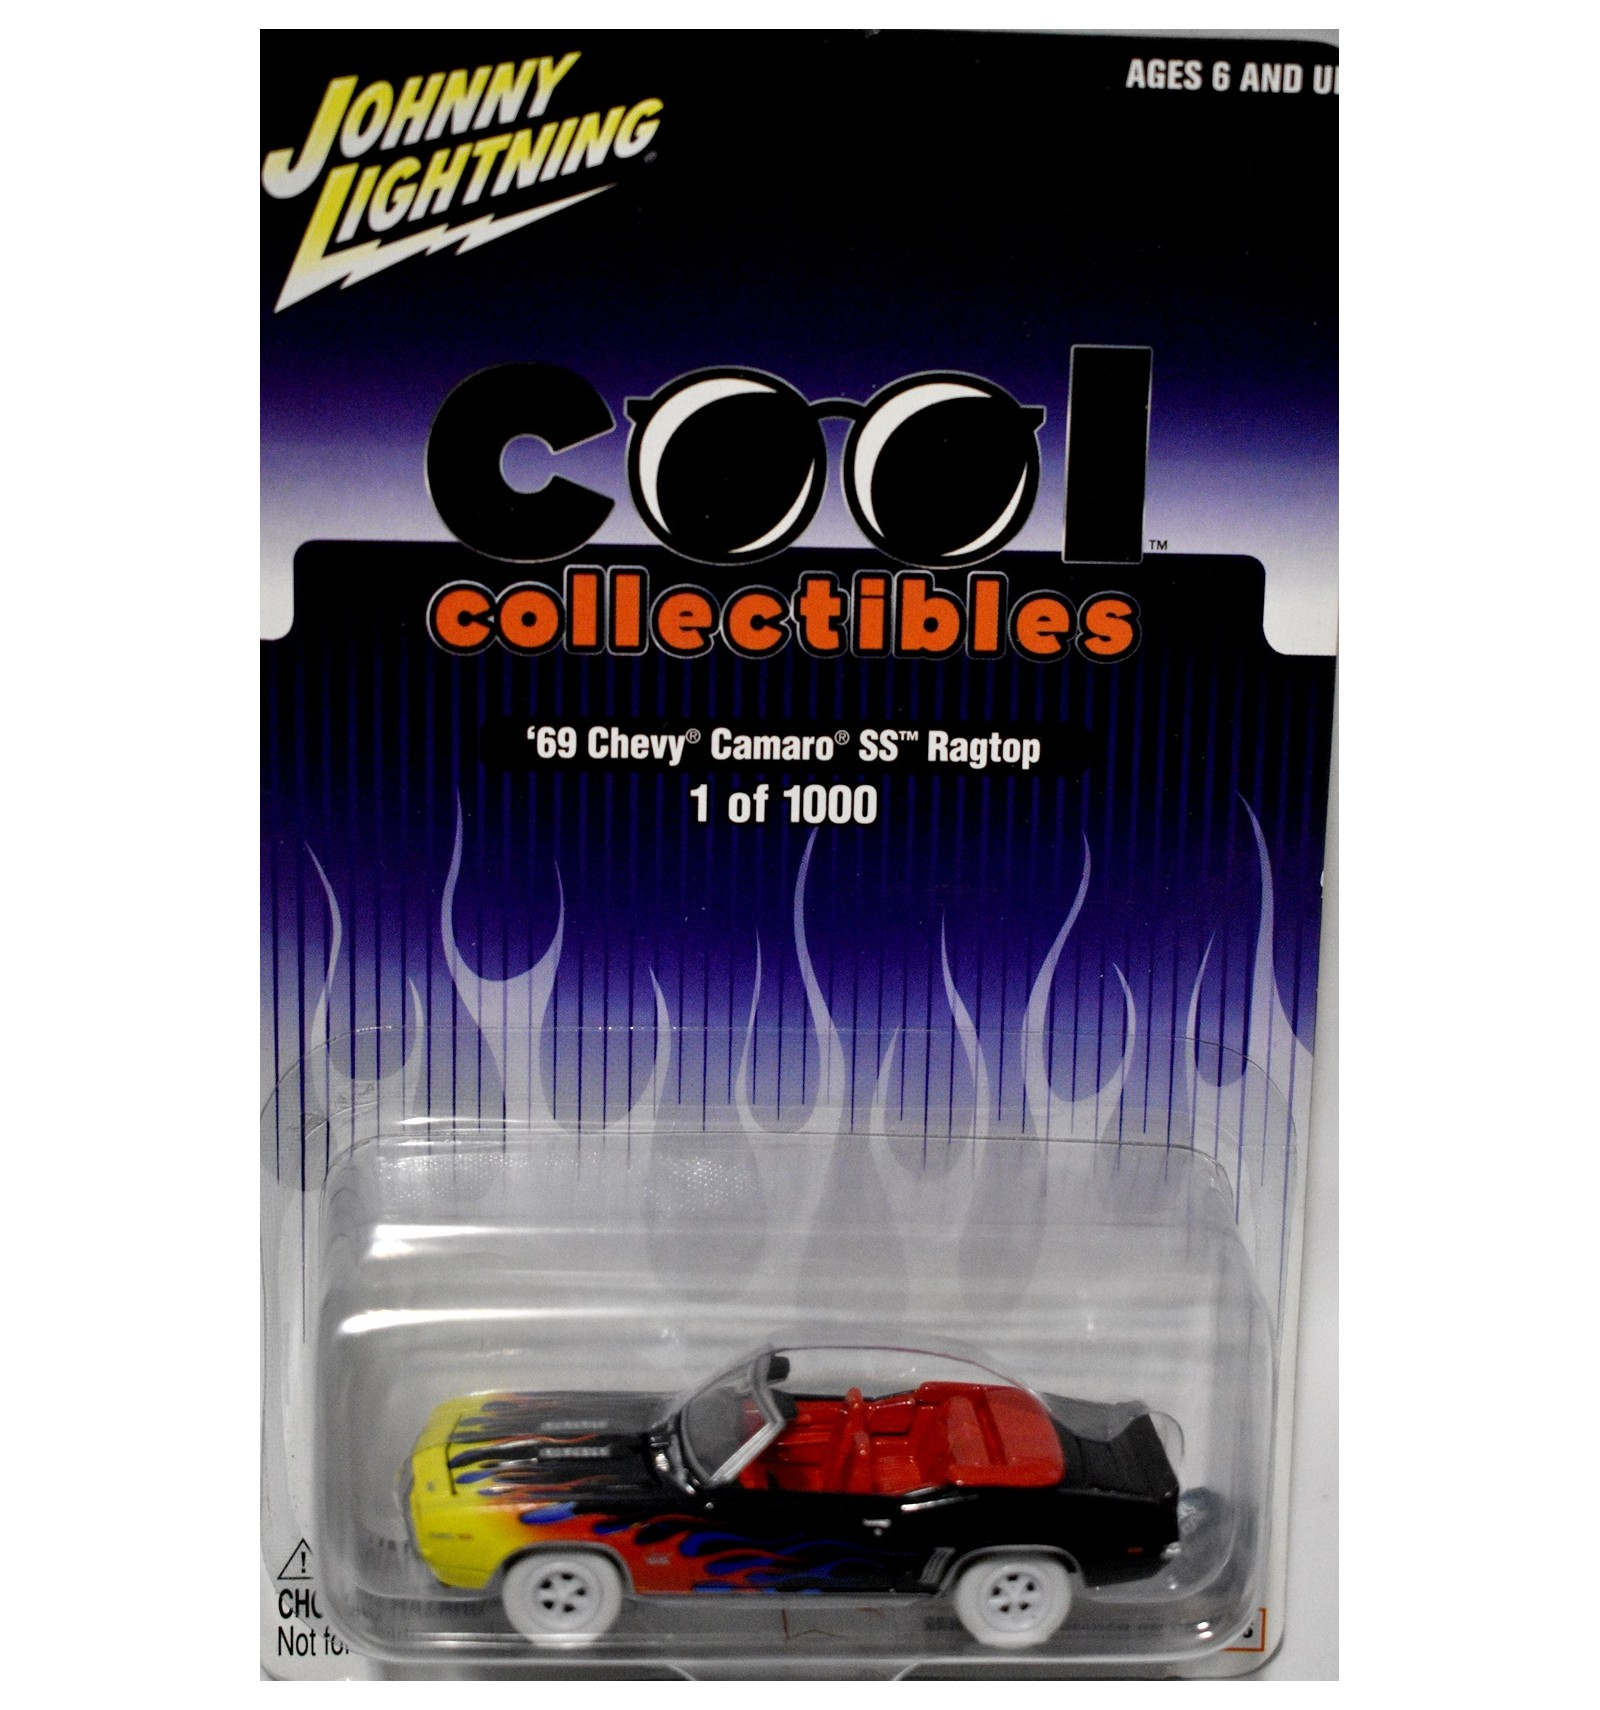 Rare Johnny Lightning Promo White Lightning Cool Collectibles 1969 Chevrolet Camaro Convertible Global Diecast Direct